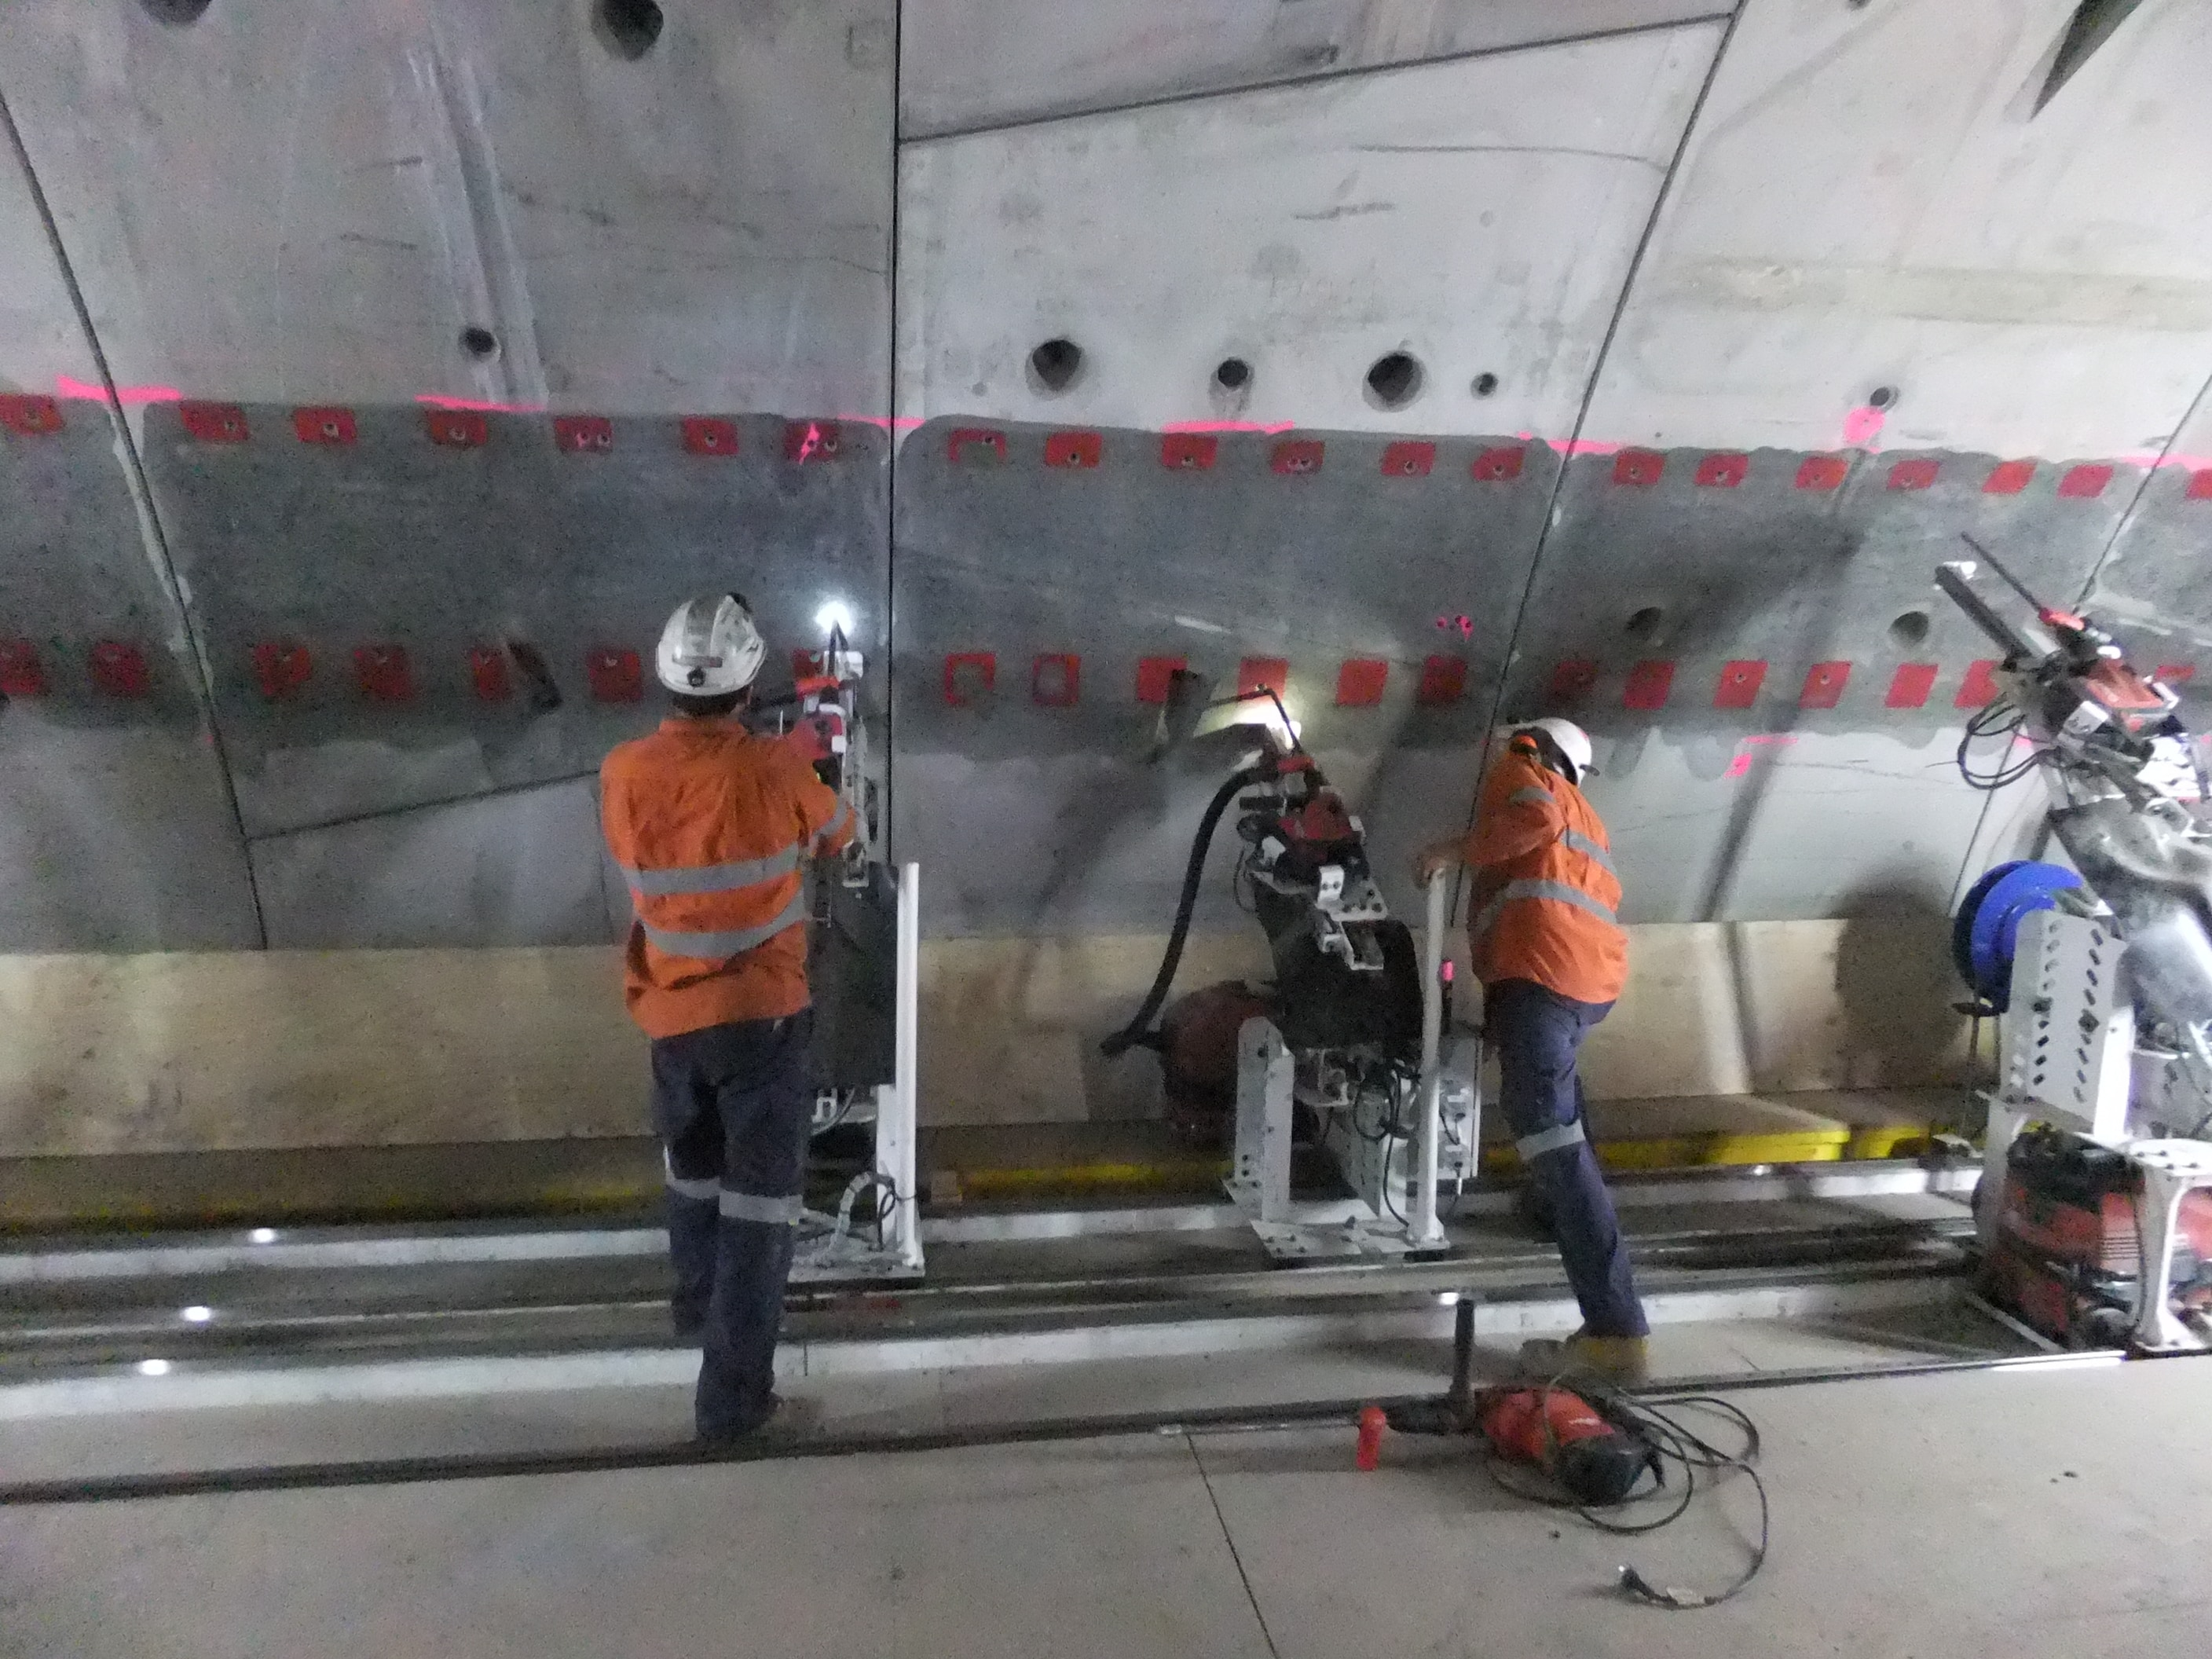 Herrenknecht rig and Hilti hammer drills and vacuums on the Legacy Way Tunnel in Brisbane